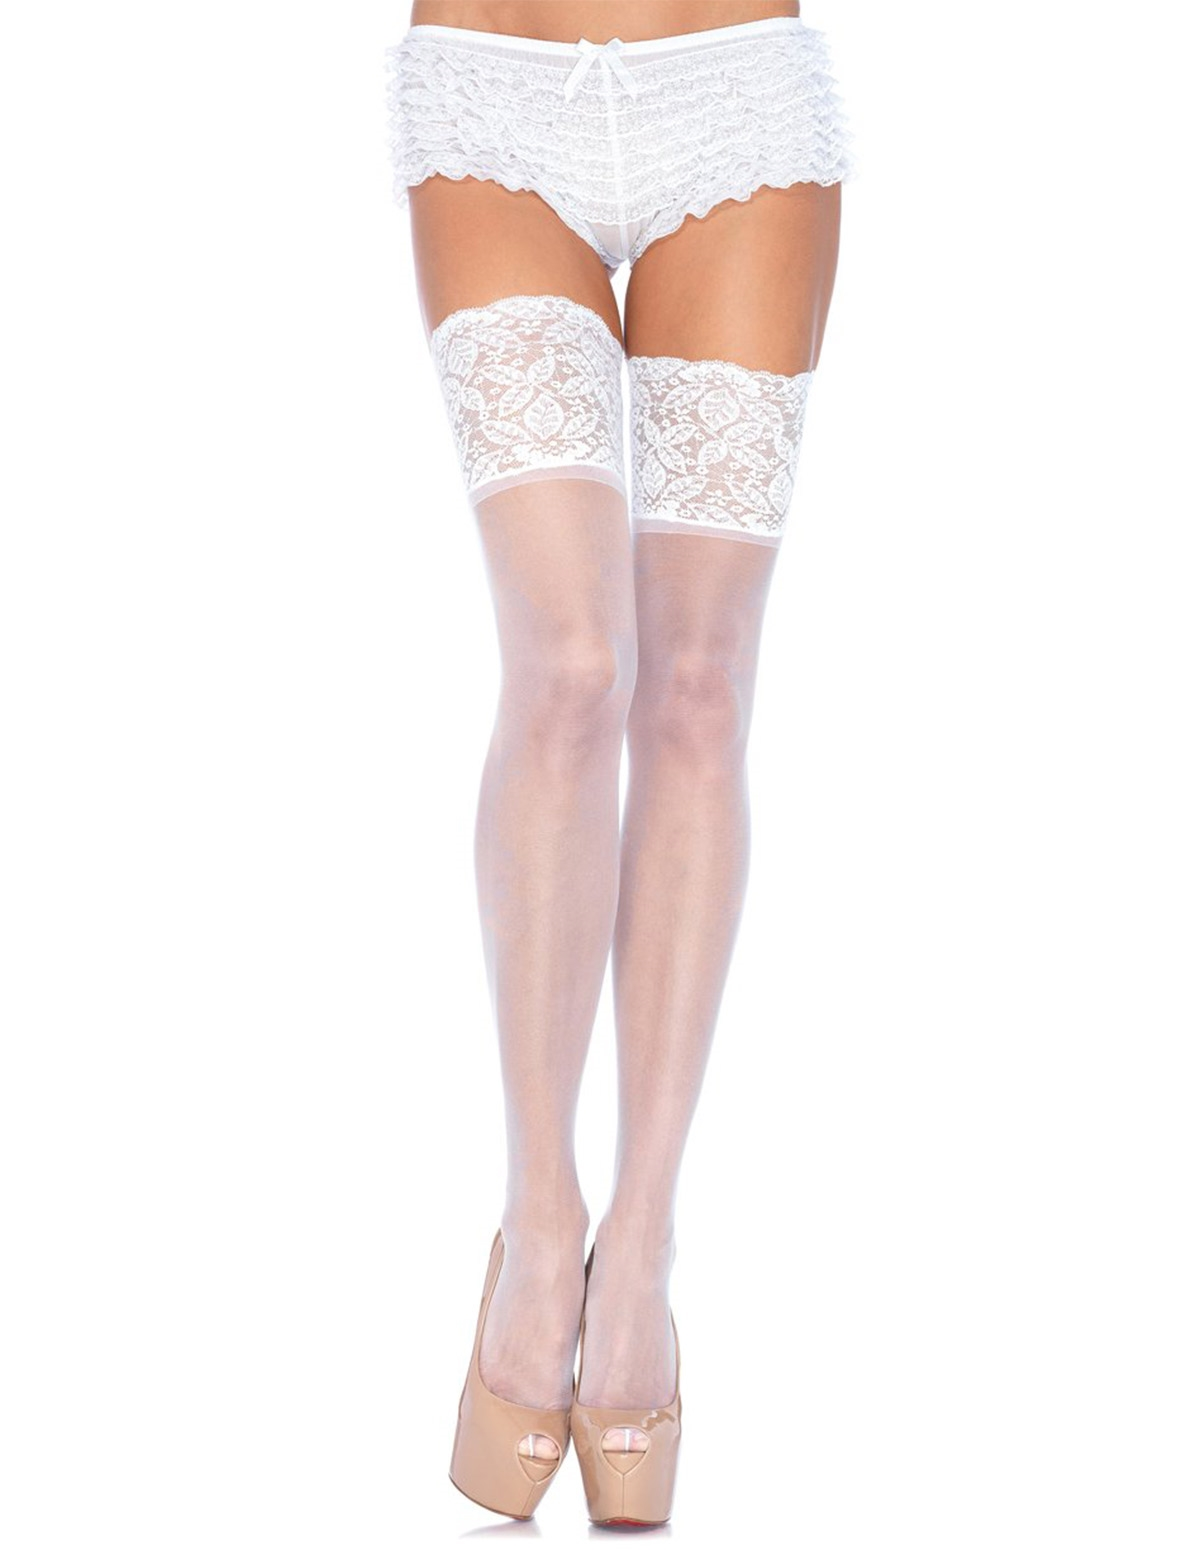 5 Inch Lace Top Plus Size Thigh High